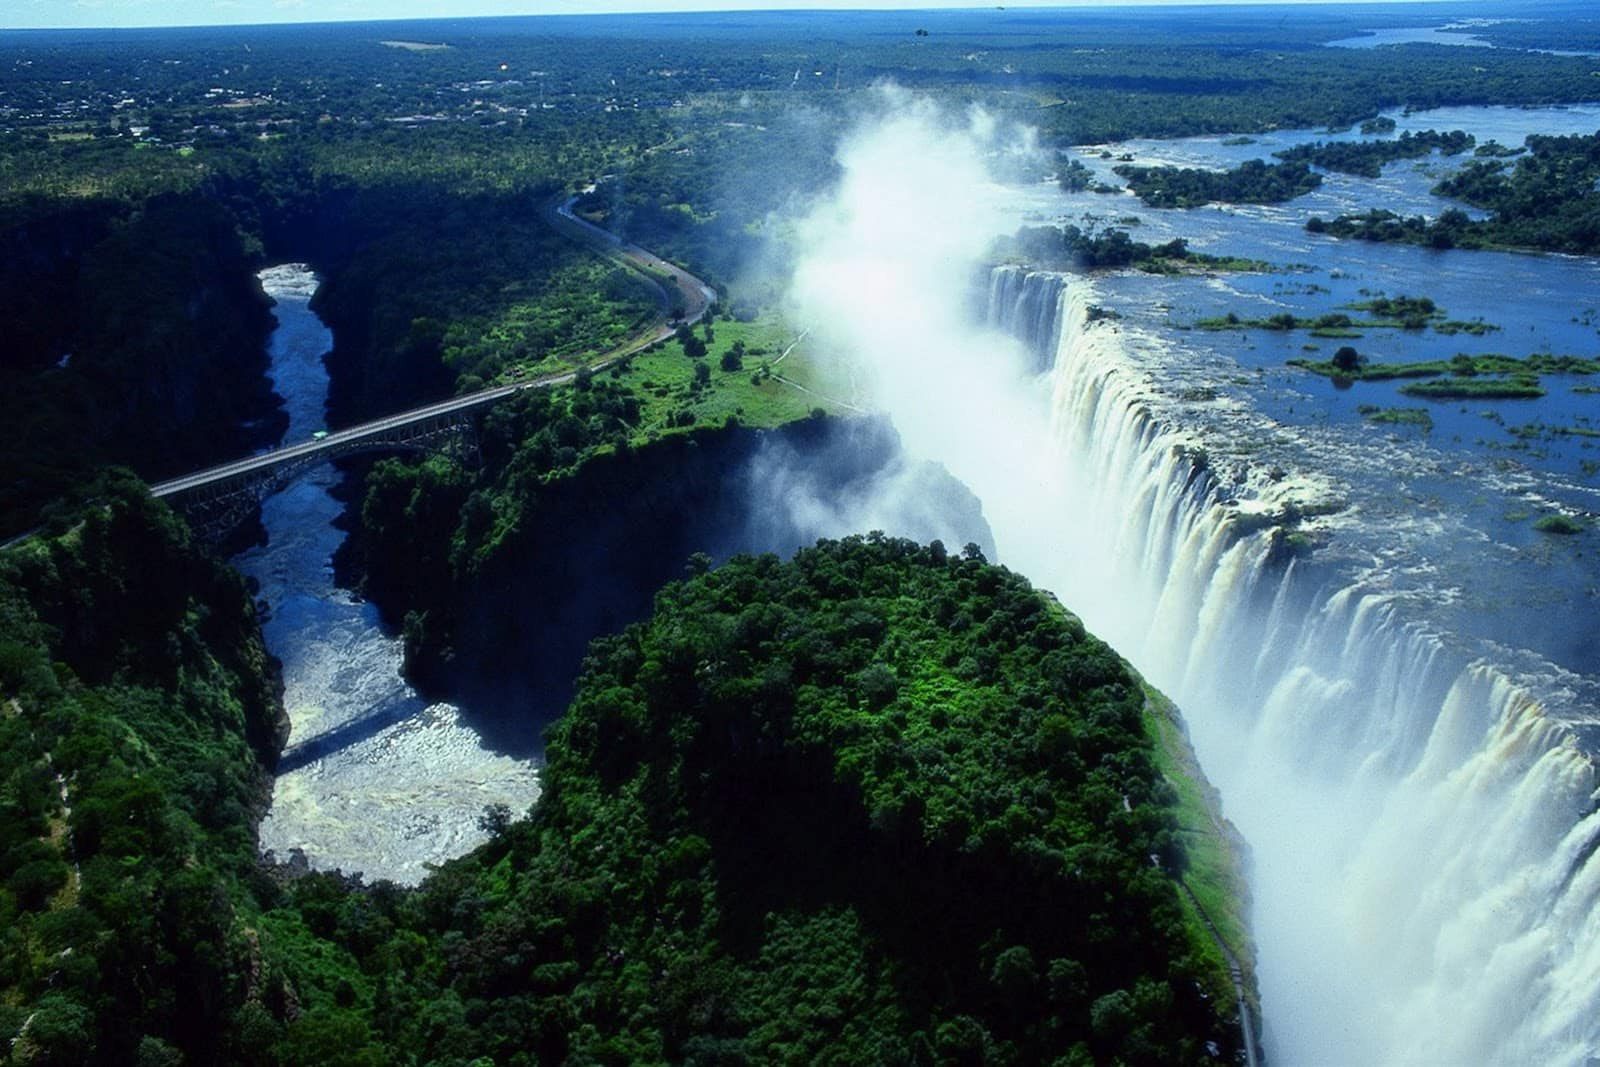 New univisa for zambia and zimbabwe great news for for Piscina del diablo